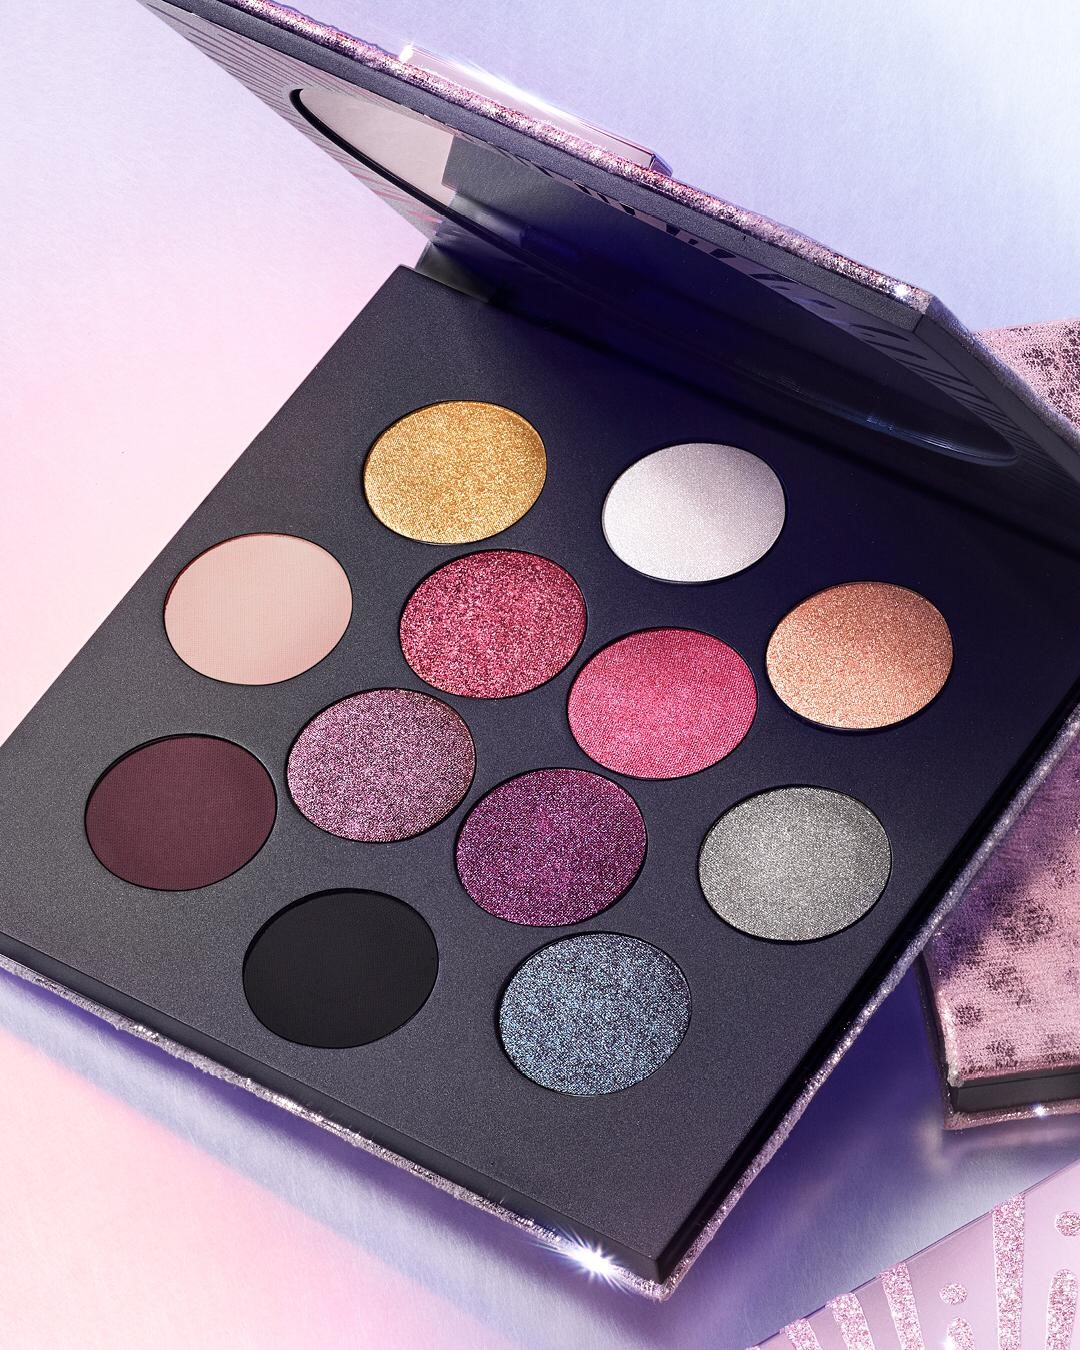 ROCKET TO FAME EYESHADOW: EYE SHADOW X 12 from M.A.C